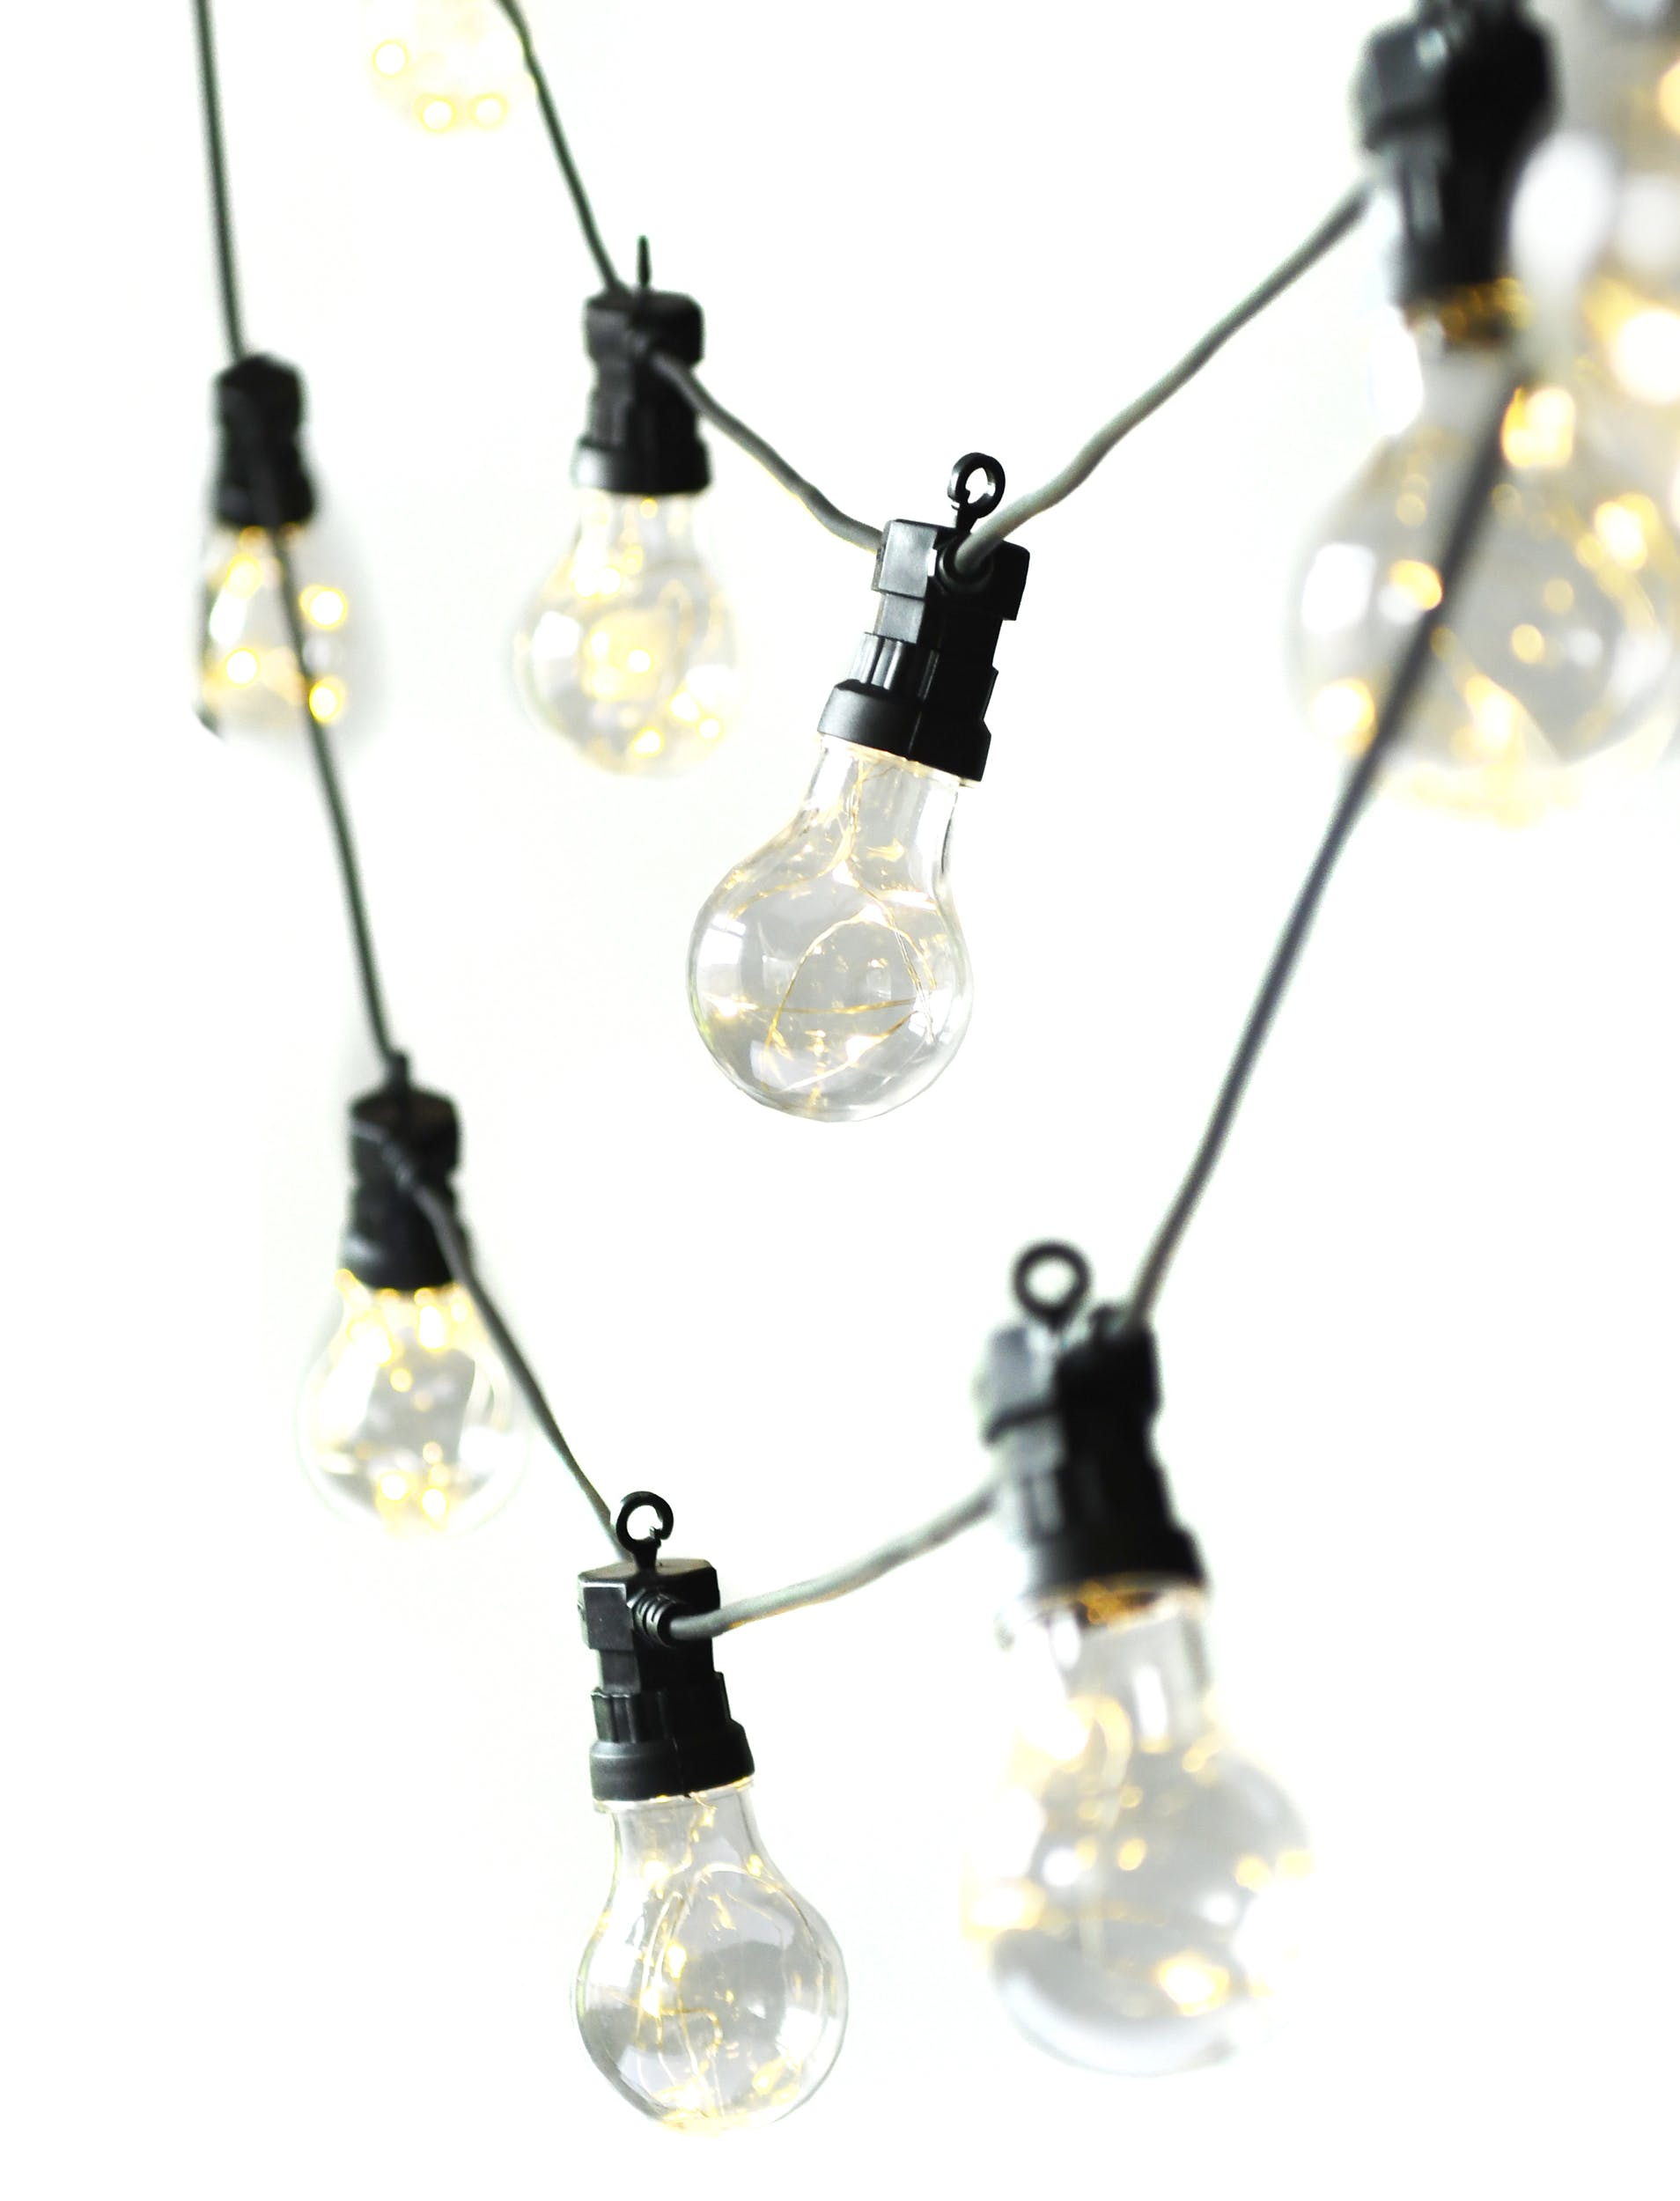 Black Festoon Lights